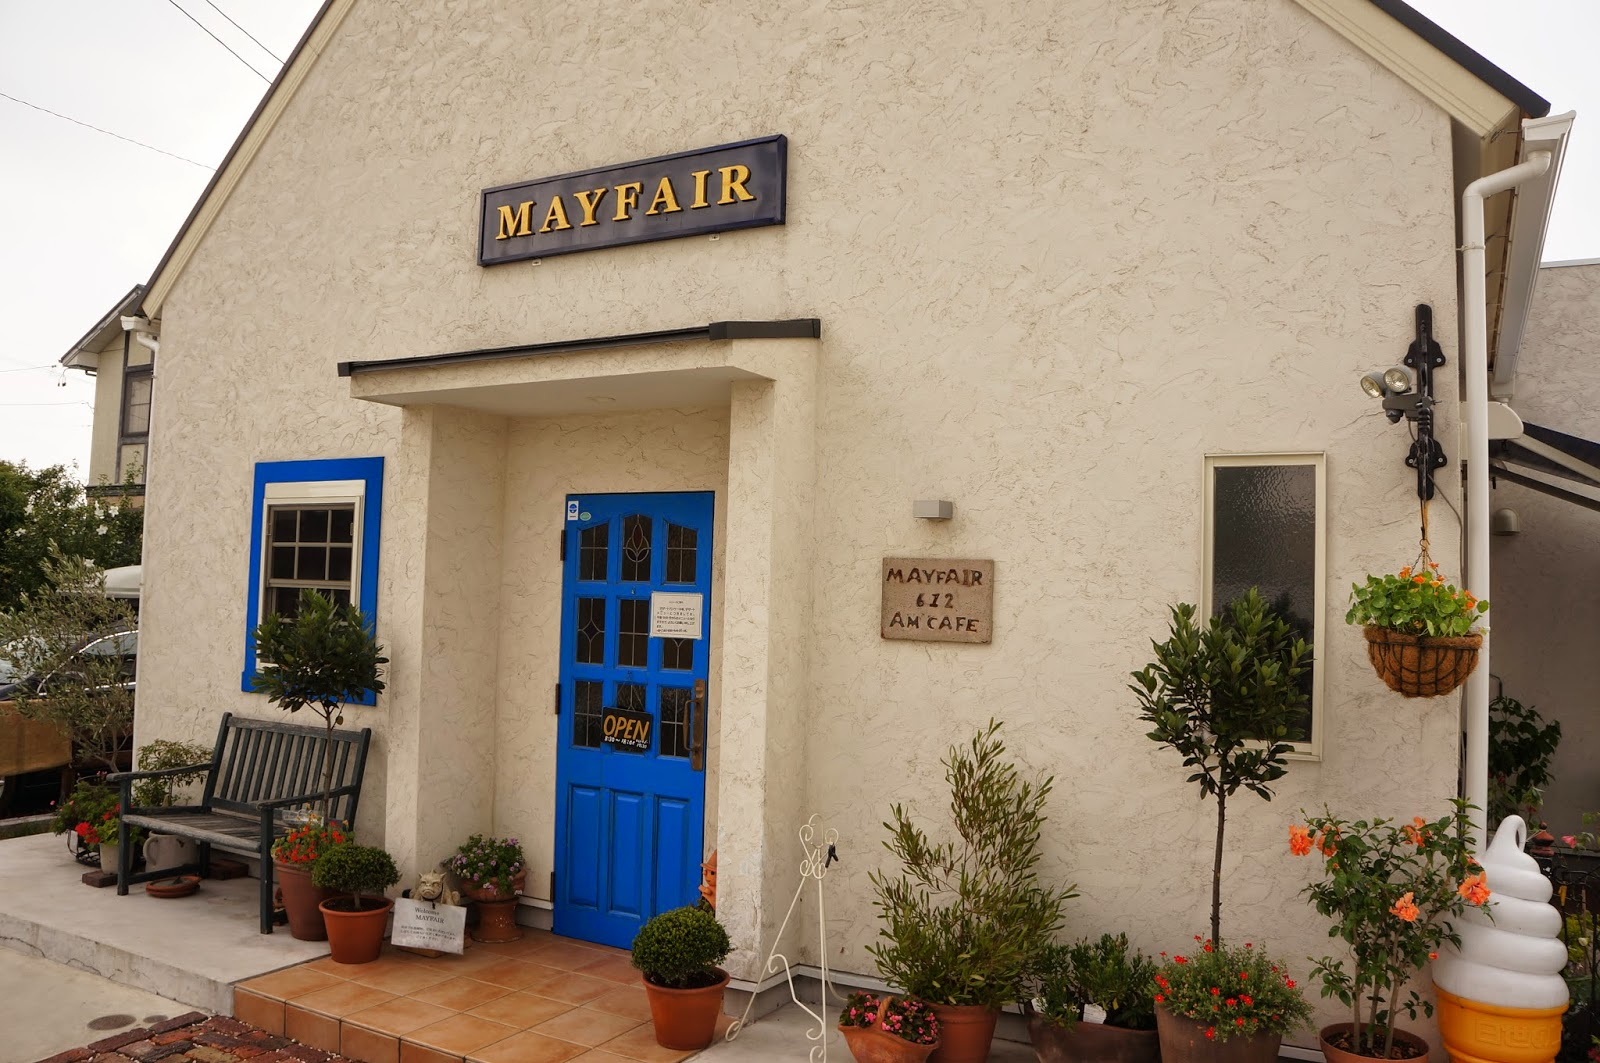 MAY FAIR am café